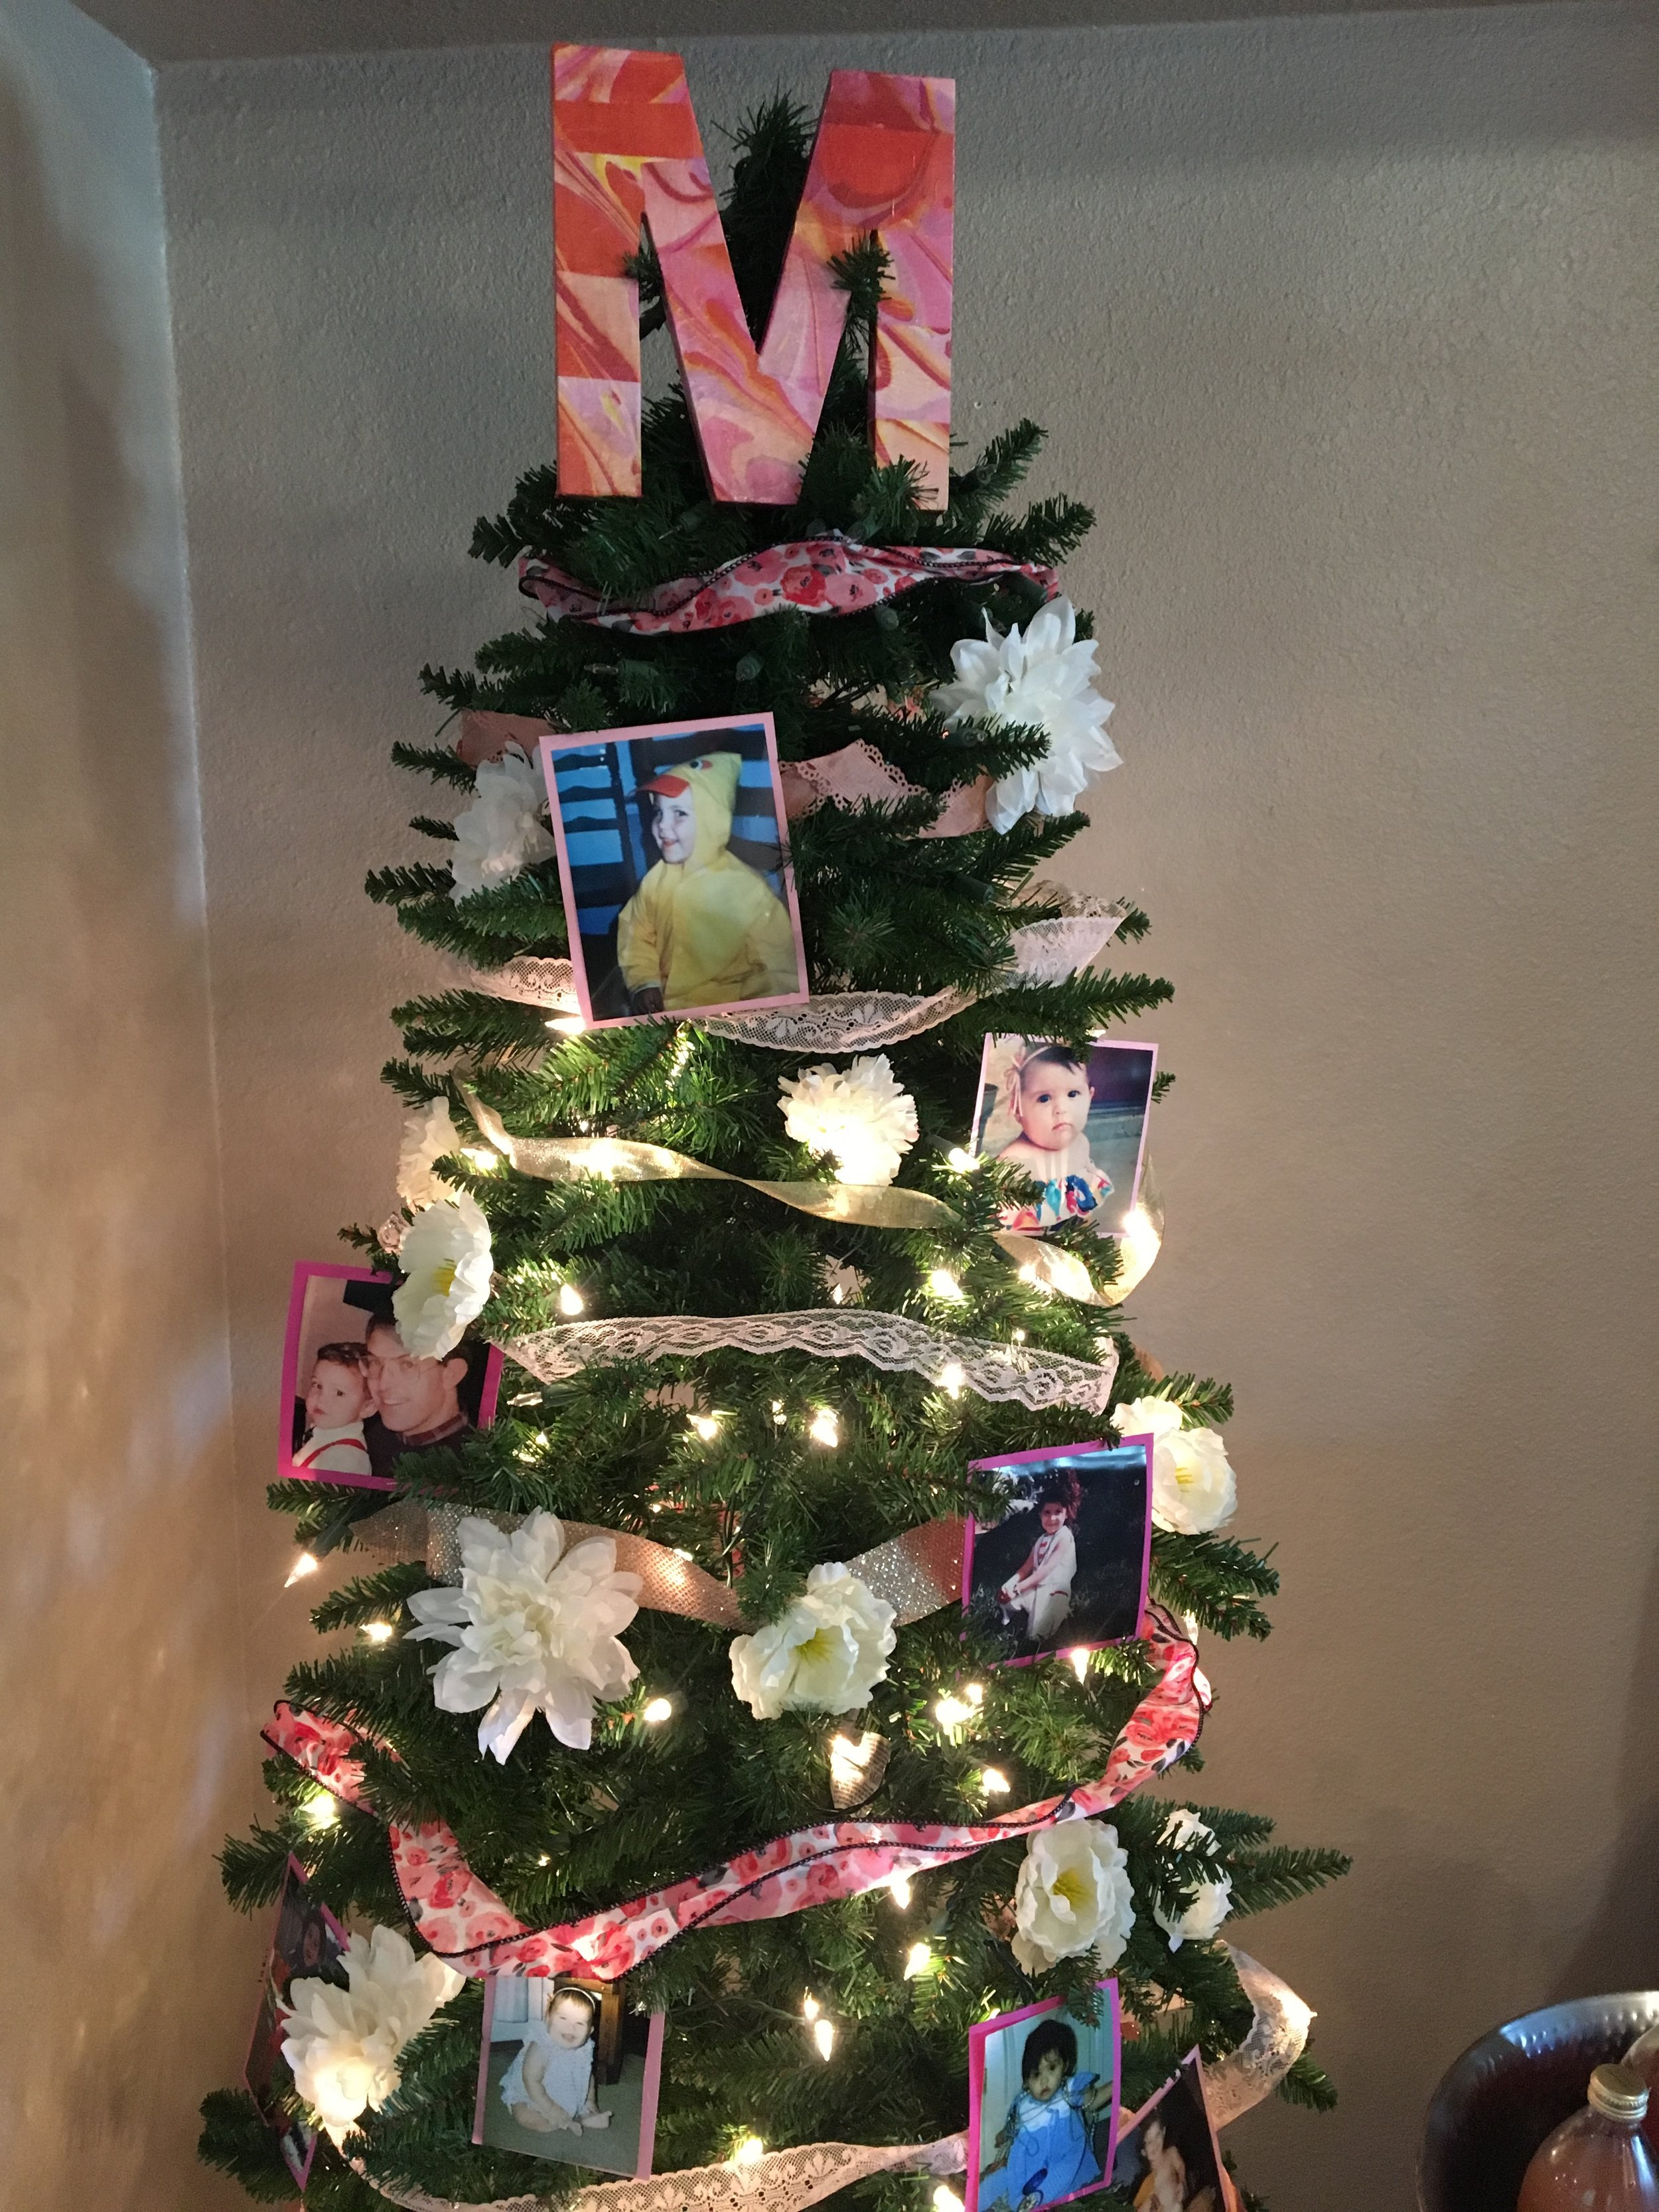 Meredith keeps up a year-round tree, with different themes. How cute is this? Our baby pictures served as decorations. The topper is also now part of Baby Marisa's nursery decor.